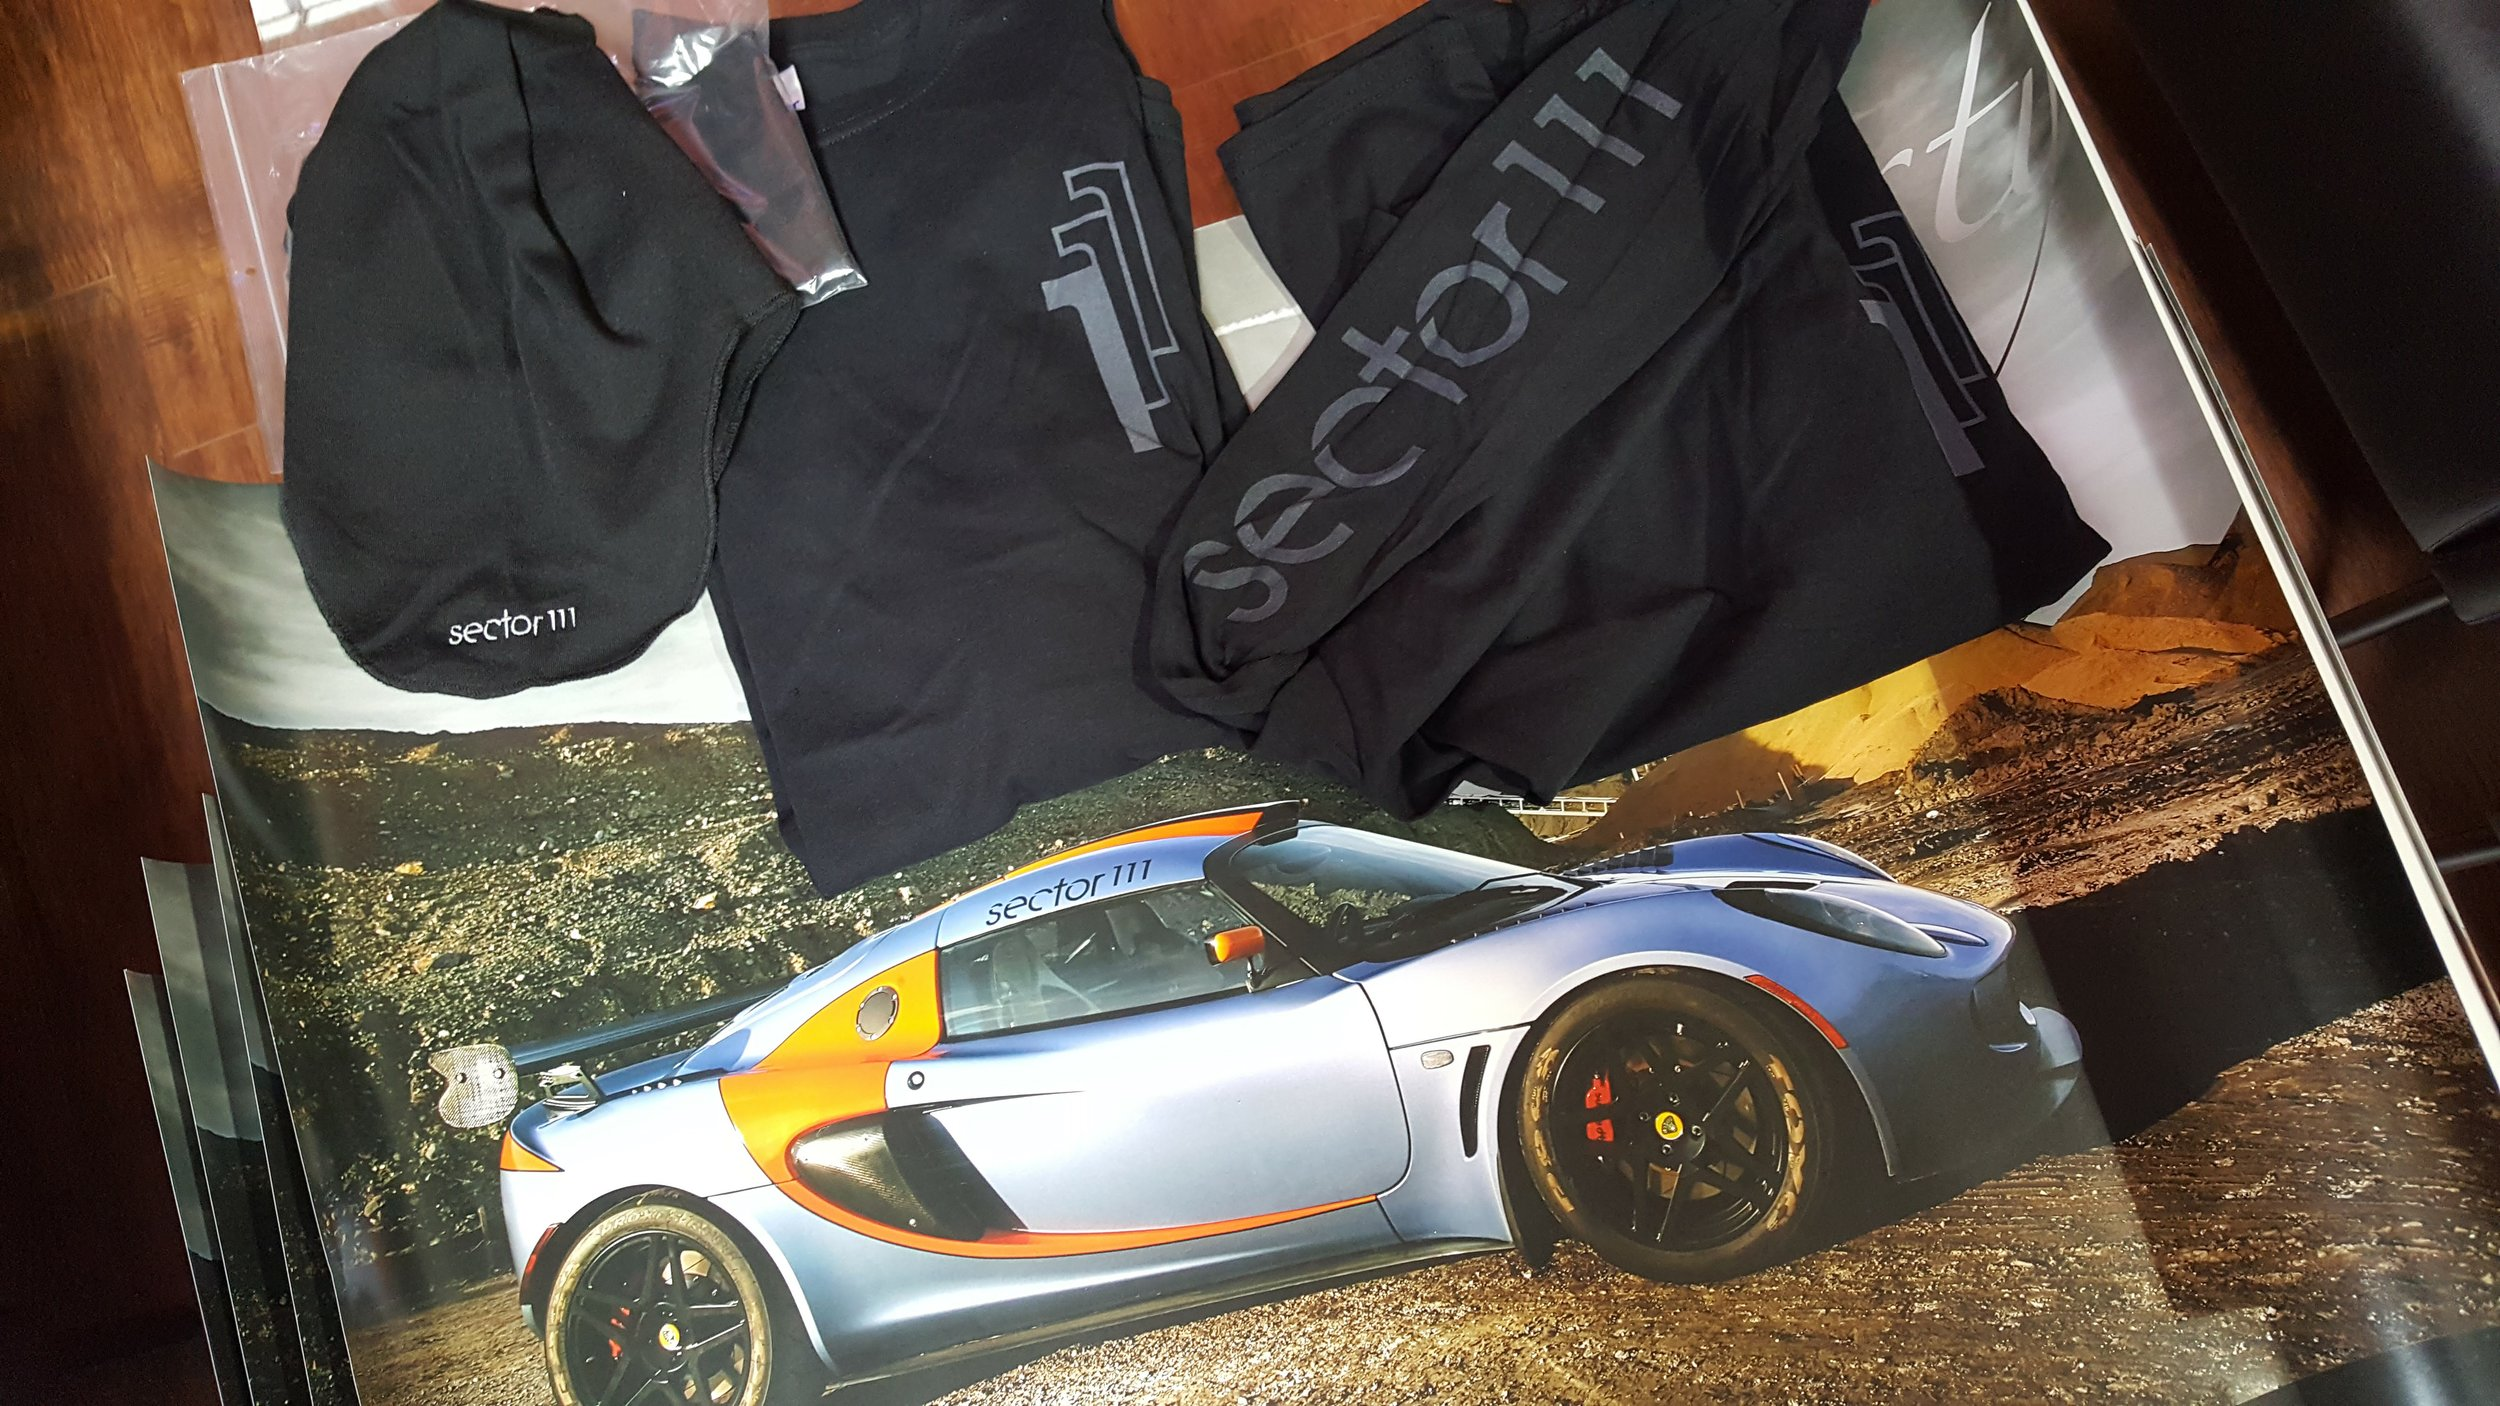 Sector 111  Package: includes 1 long sleeve, 1 balaclava, 1 Exige poster. Estimated value: $80. 1 winner. / 3 posters. Estimated value: $10 each. 3 winners.